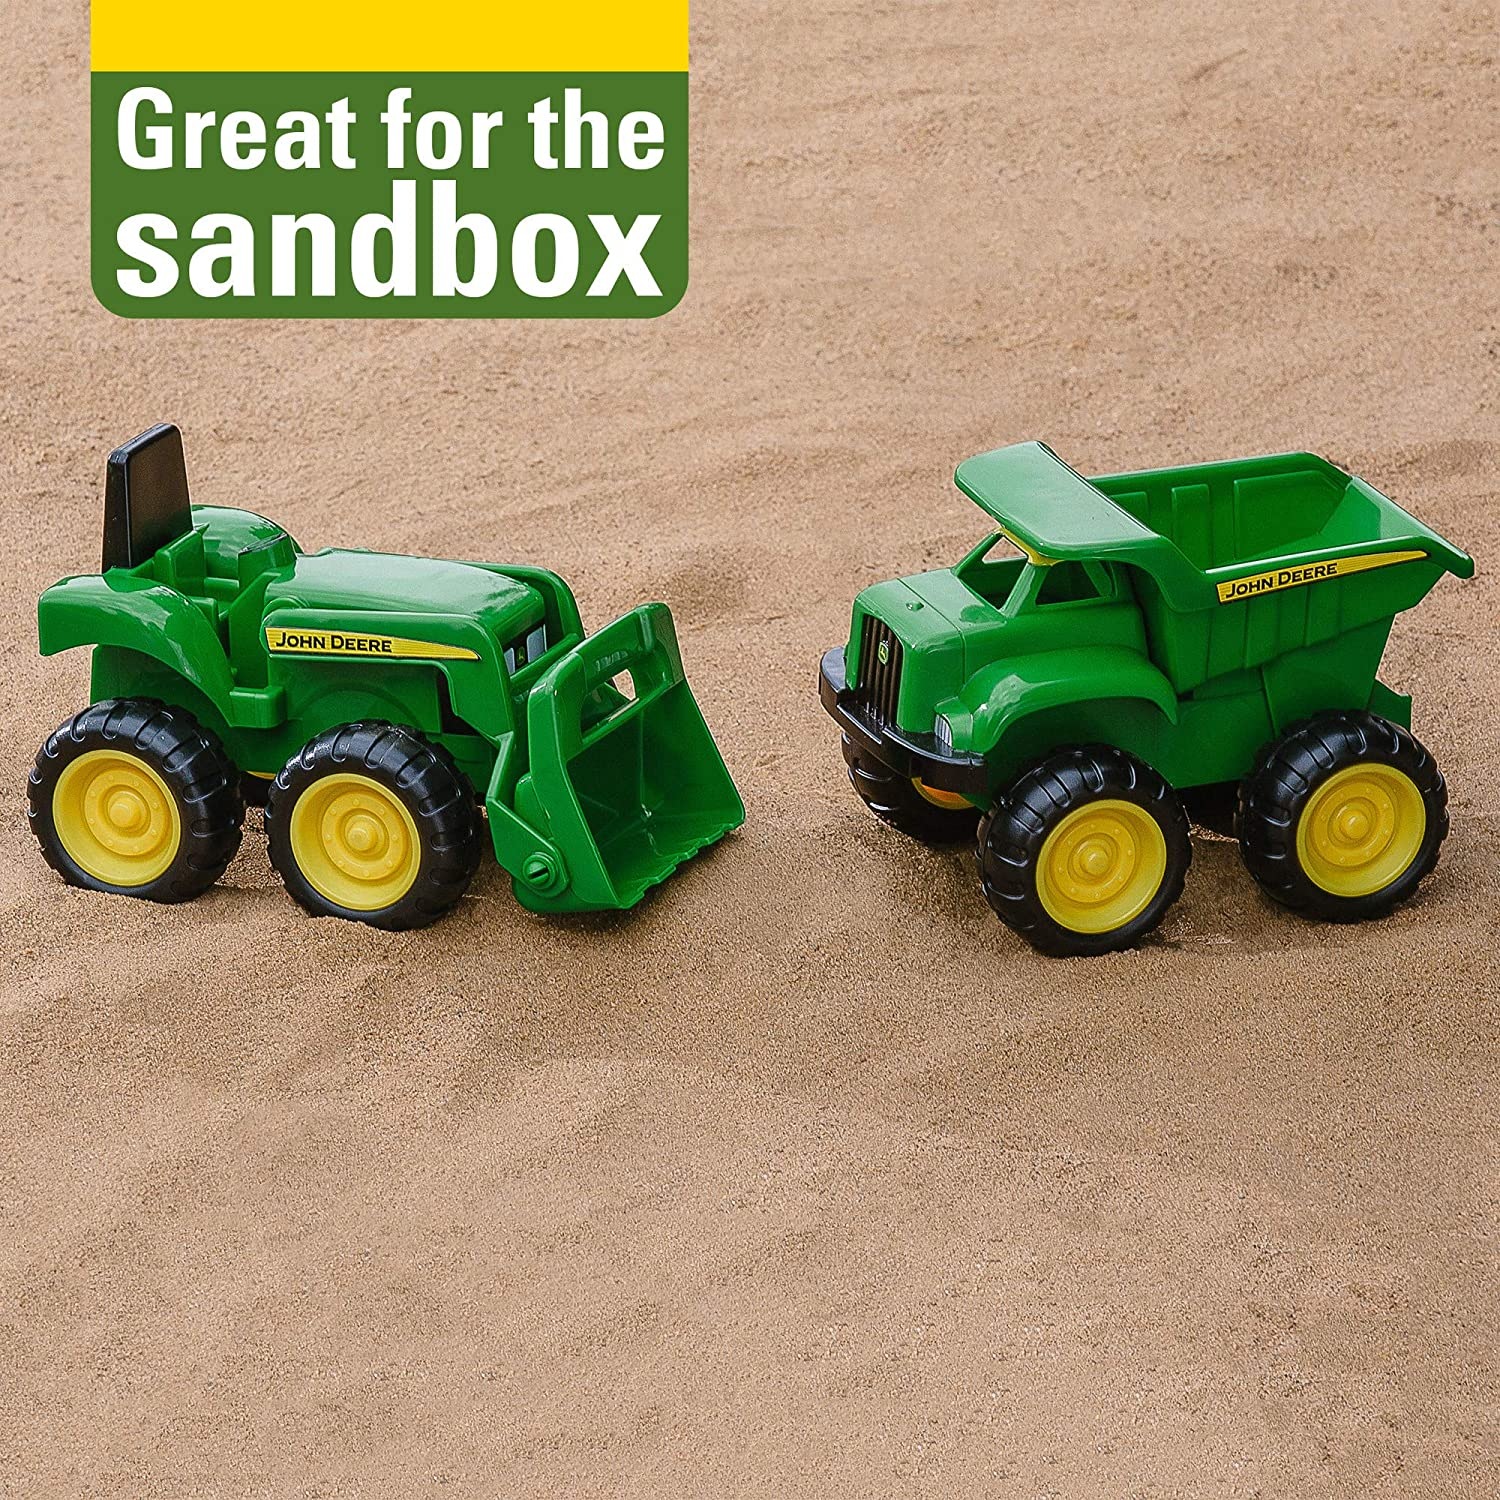 6' Sandbox Construction JohnDeere